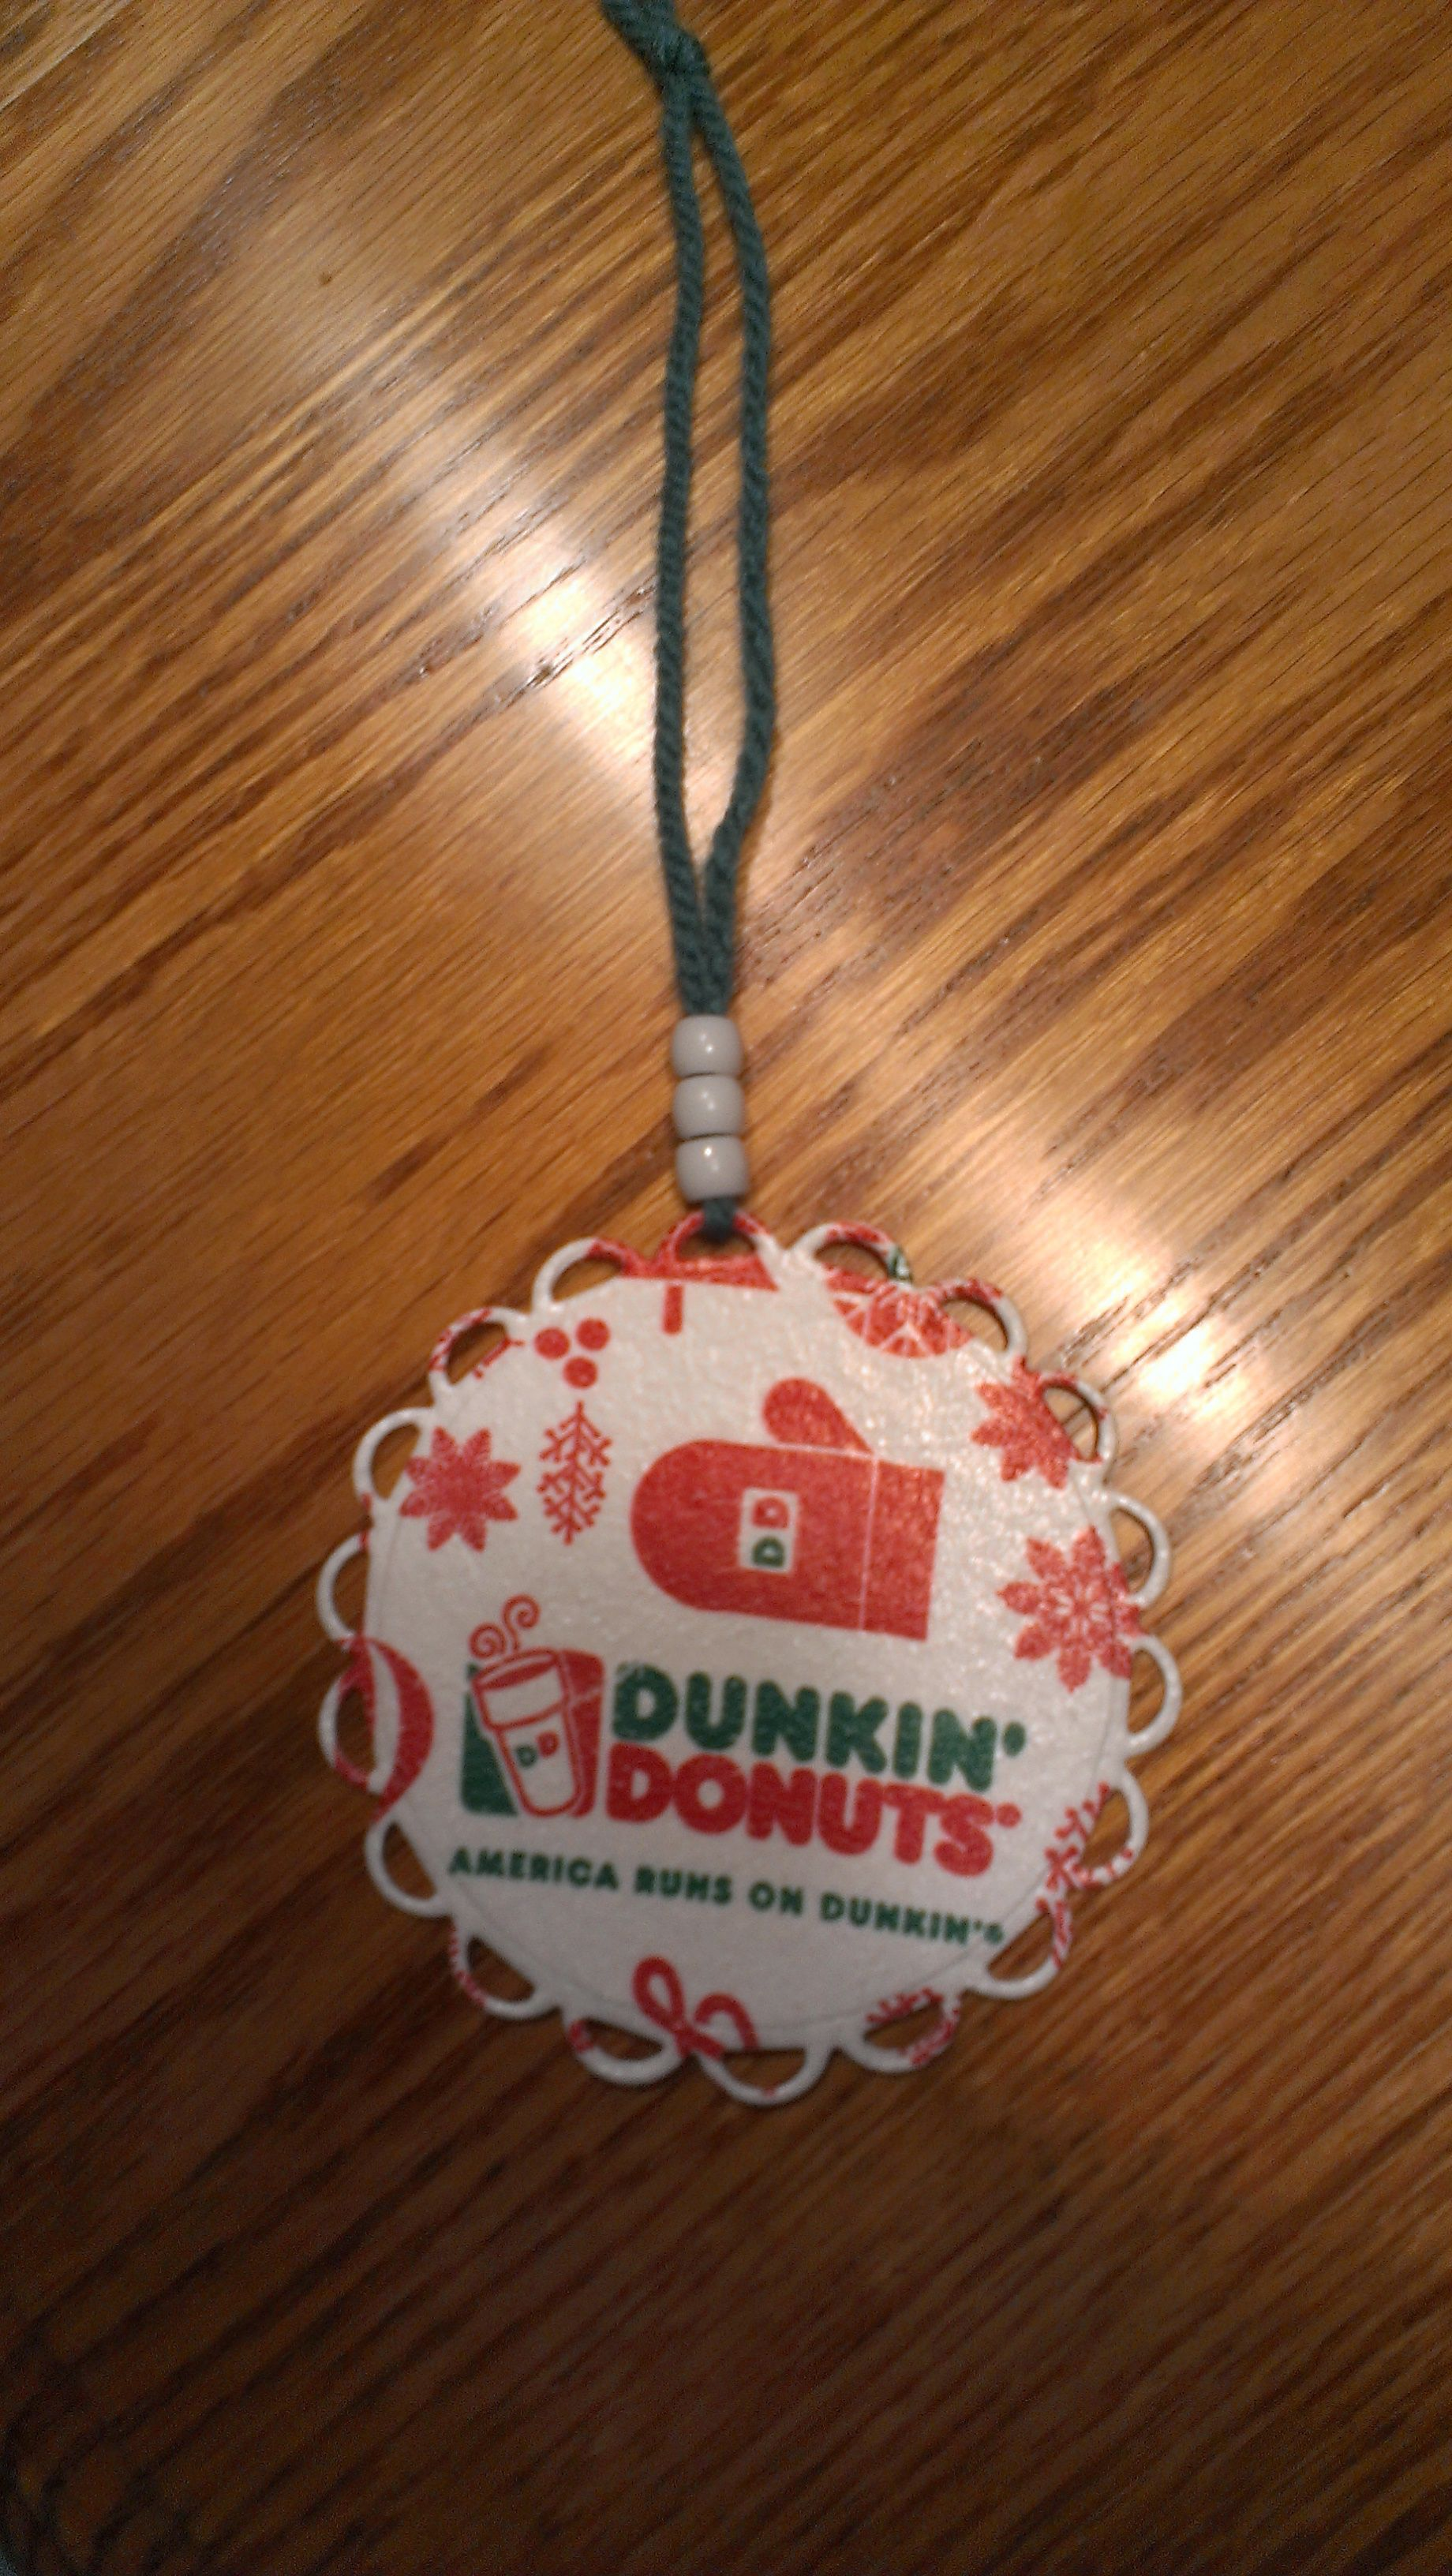 I made this ornament out of a Dunkin Donuts cup and my Cuttlebug. Doug will give it to the Dunkin Drive-thru girl who serves him his coffee every day.